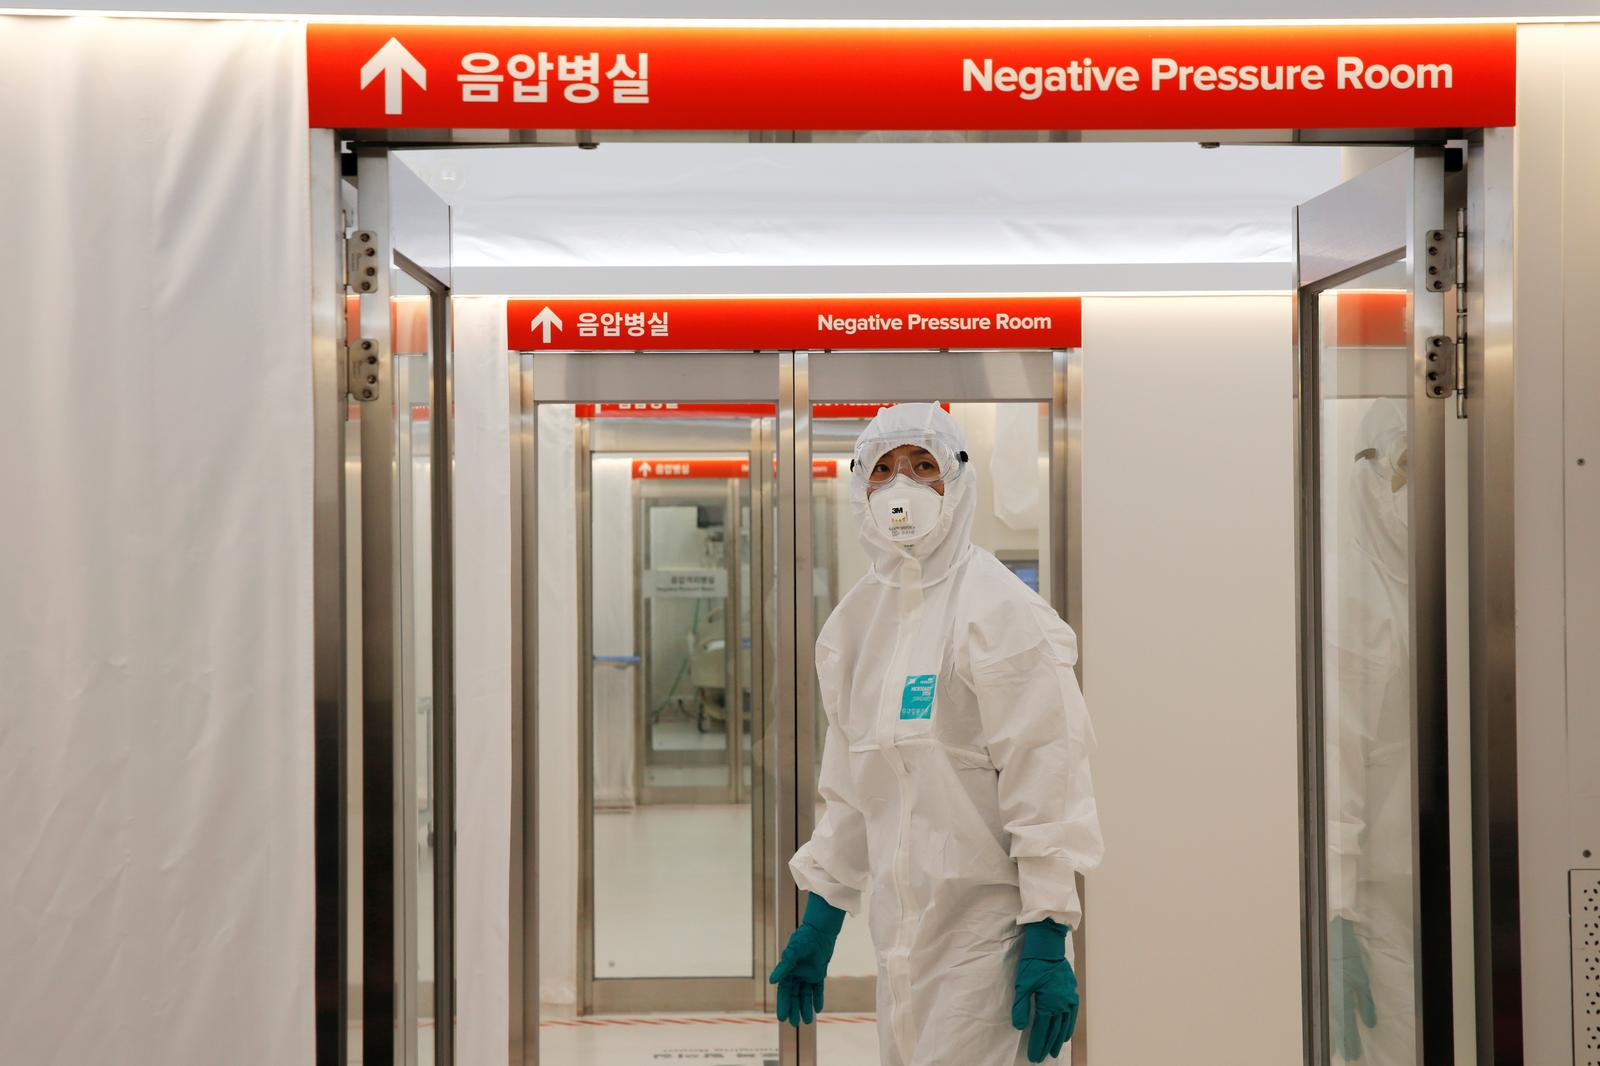 Strike threat by South Korean doctors fans fears of vaccine rollout disruption